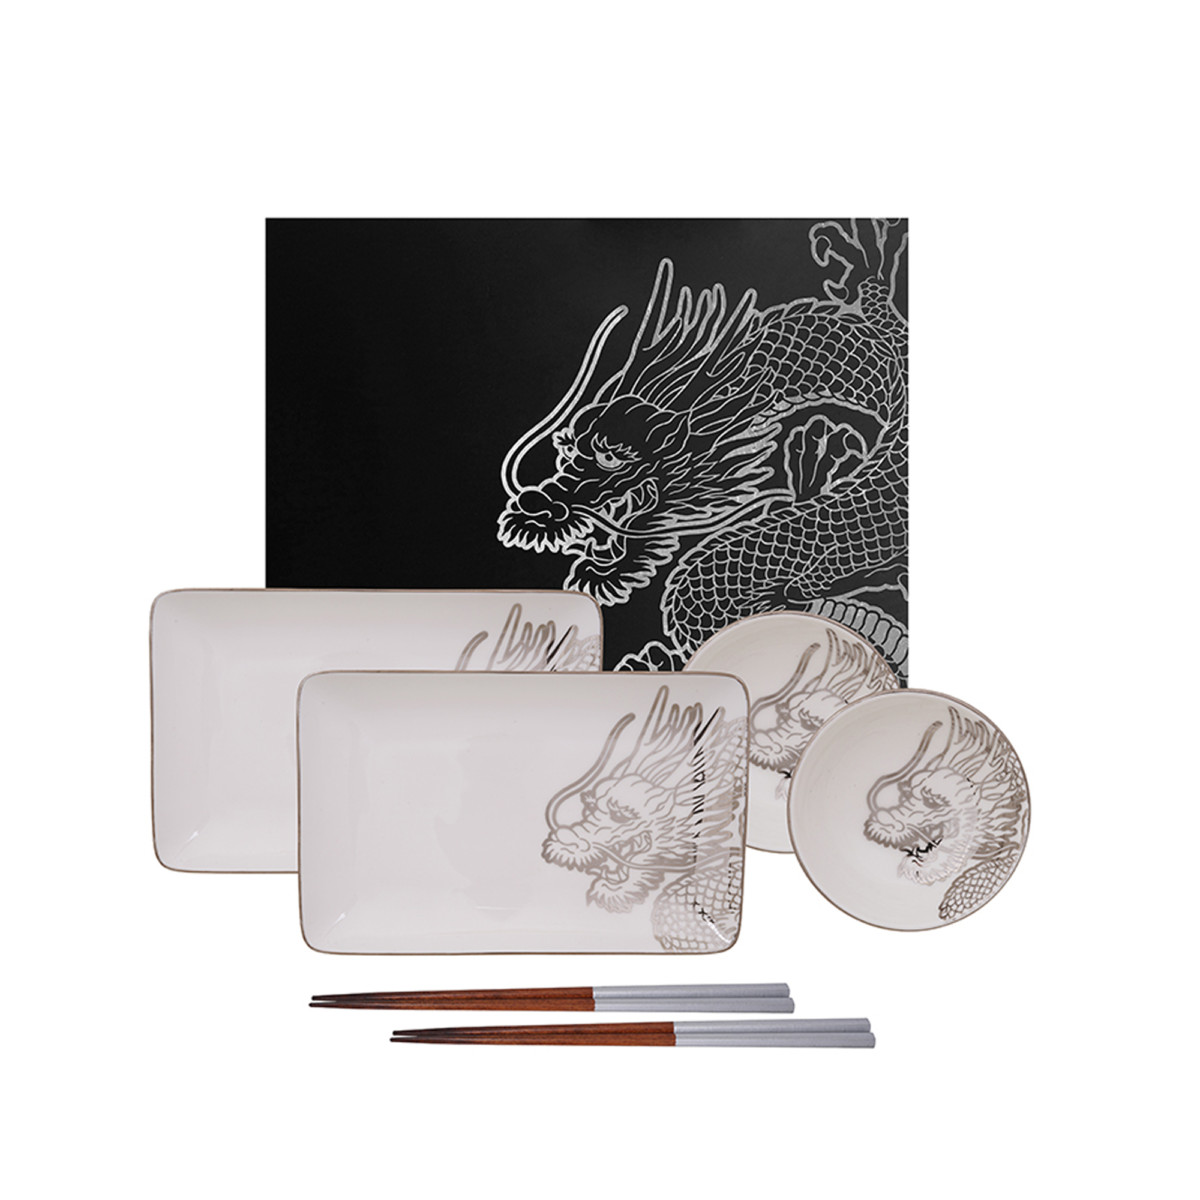 TOKYO DESIGN – LIMITED EDITION DRAGON PLATINUM PLATE SET 6 PCS